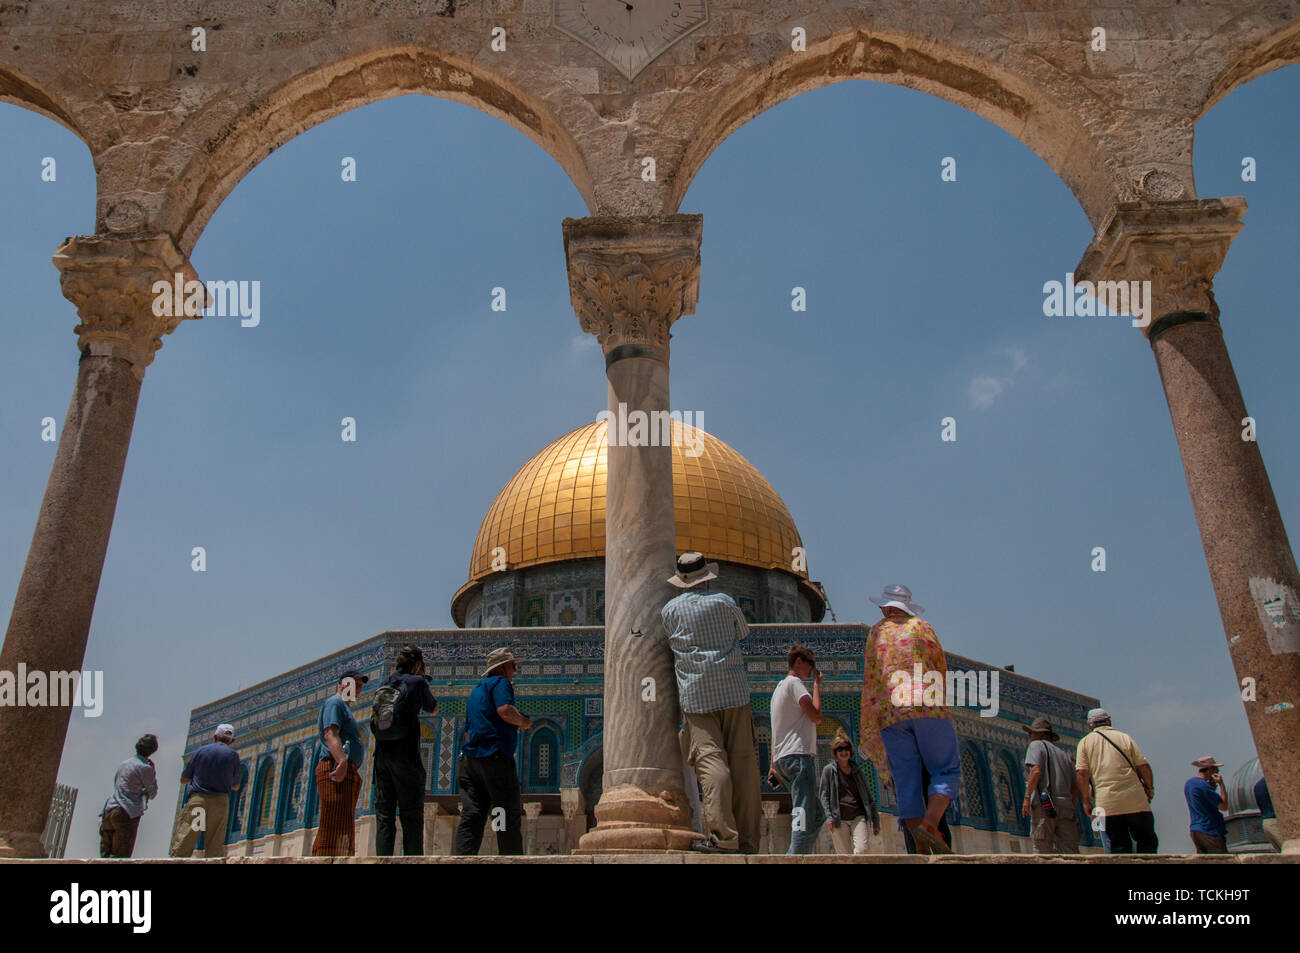 In awe of the Dome - Stock Image